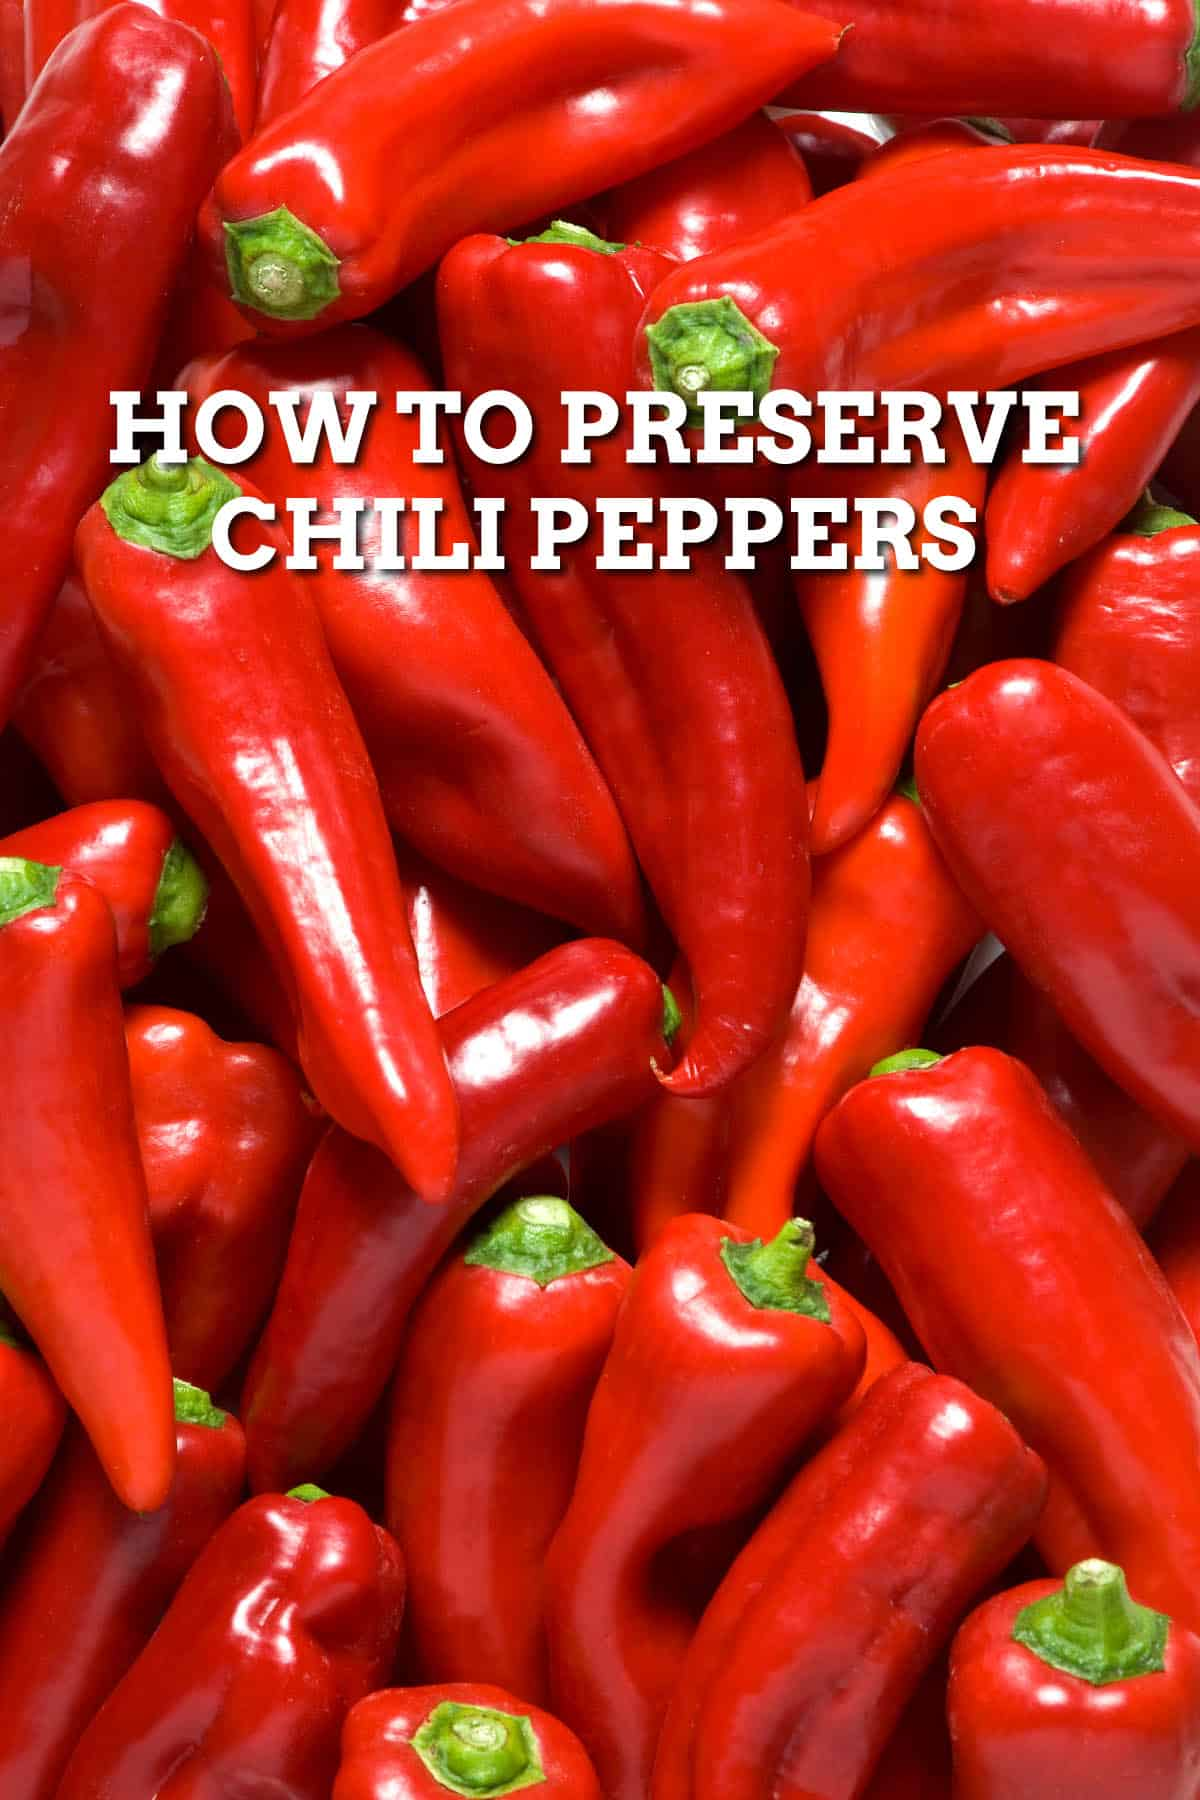 How to Preserve Chili Peppers